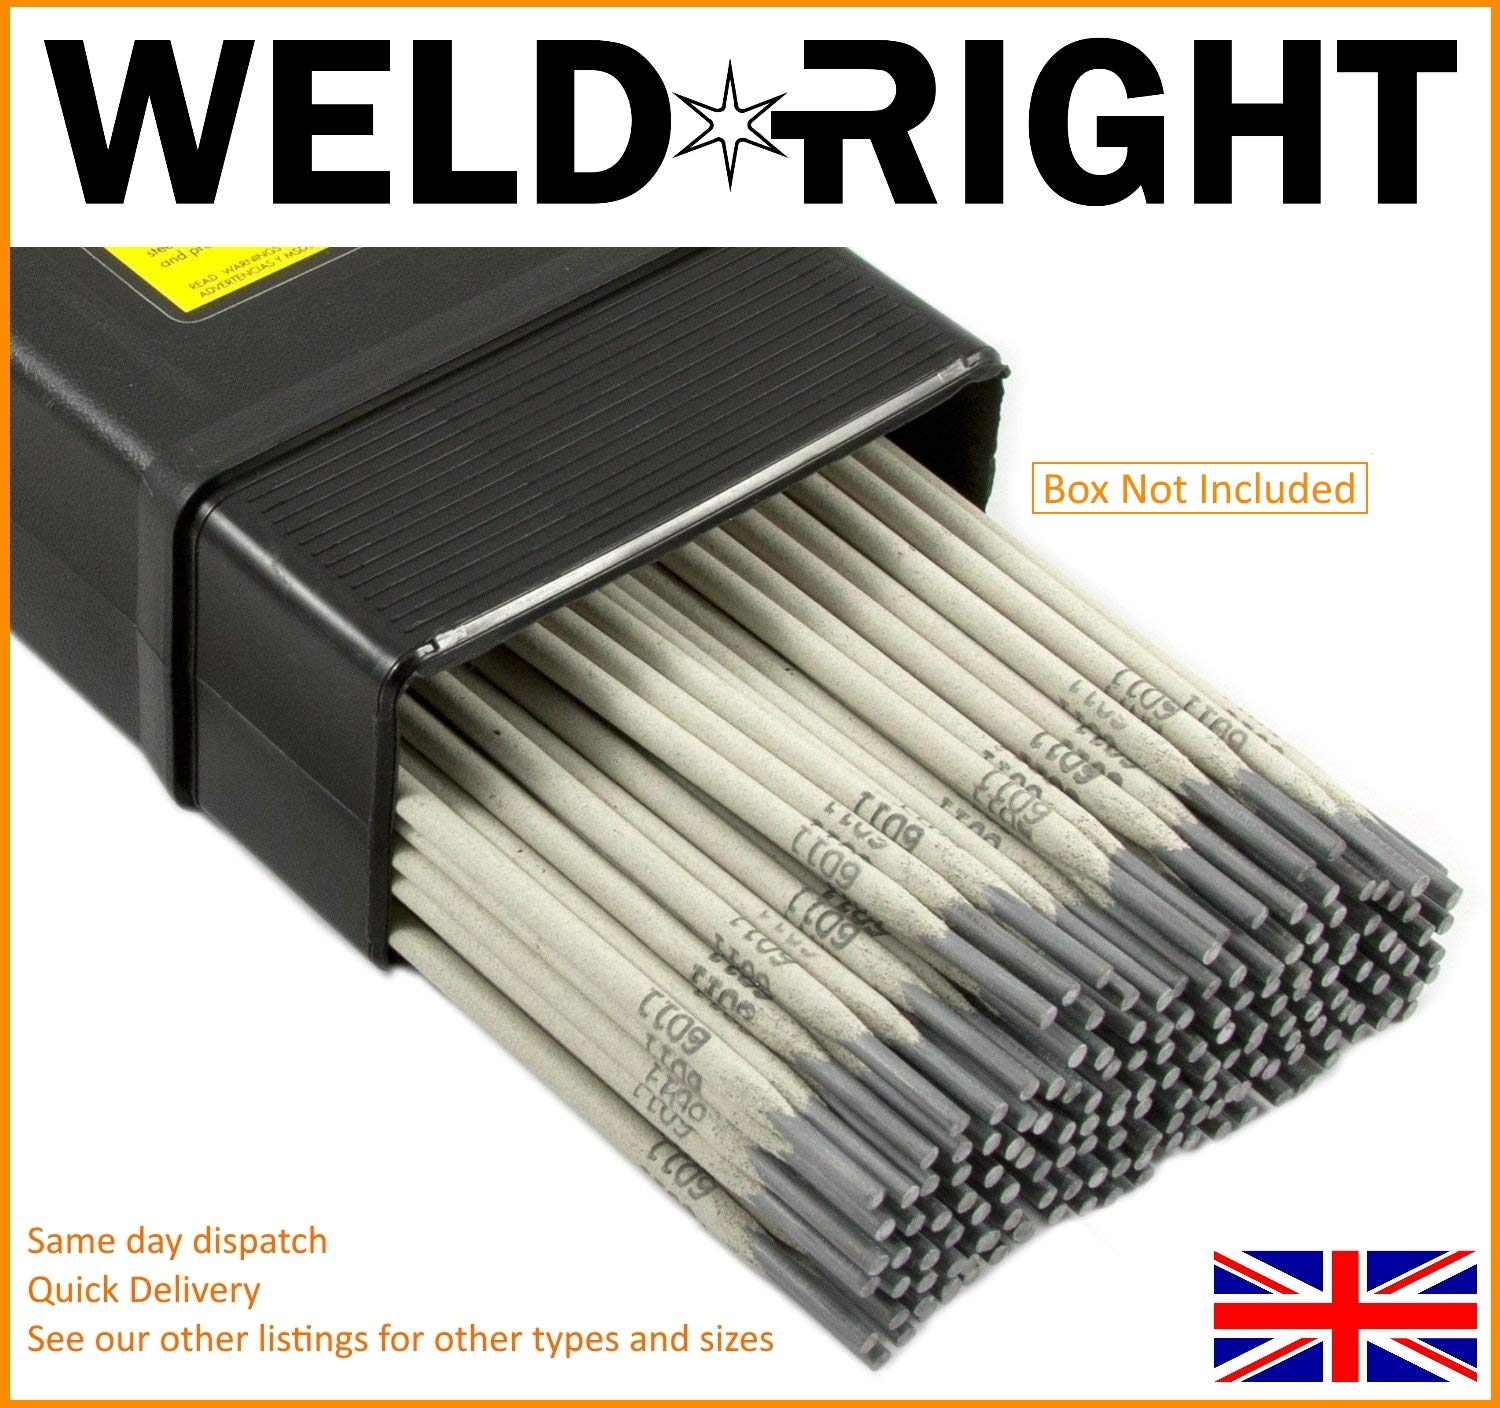 Weld Right 309L-16 Stainless Steel Arc Welding Electrodes Rods 2.5mm x 50 Rods